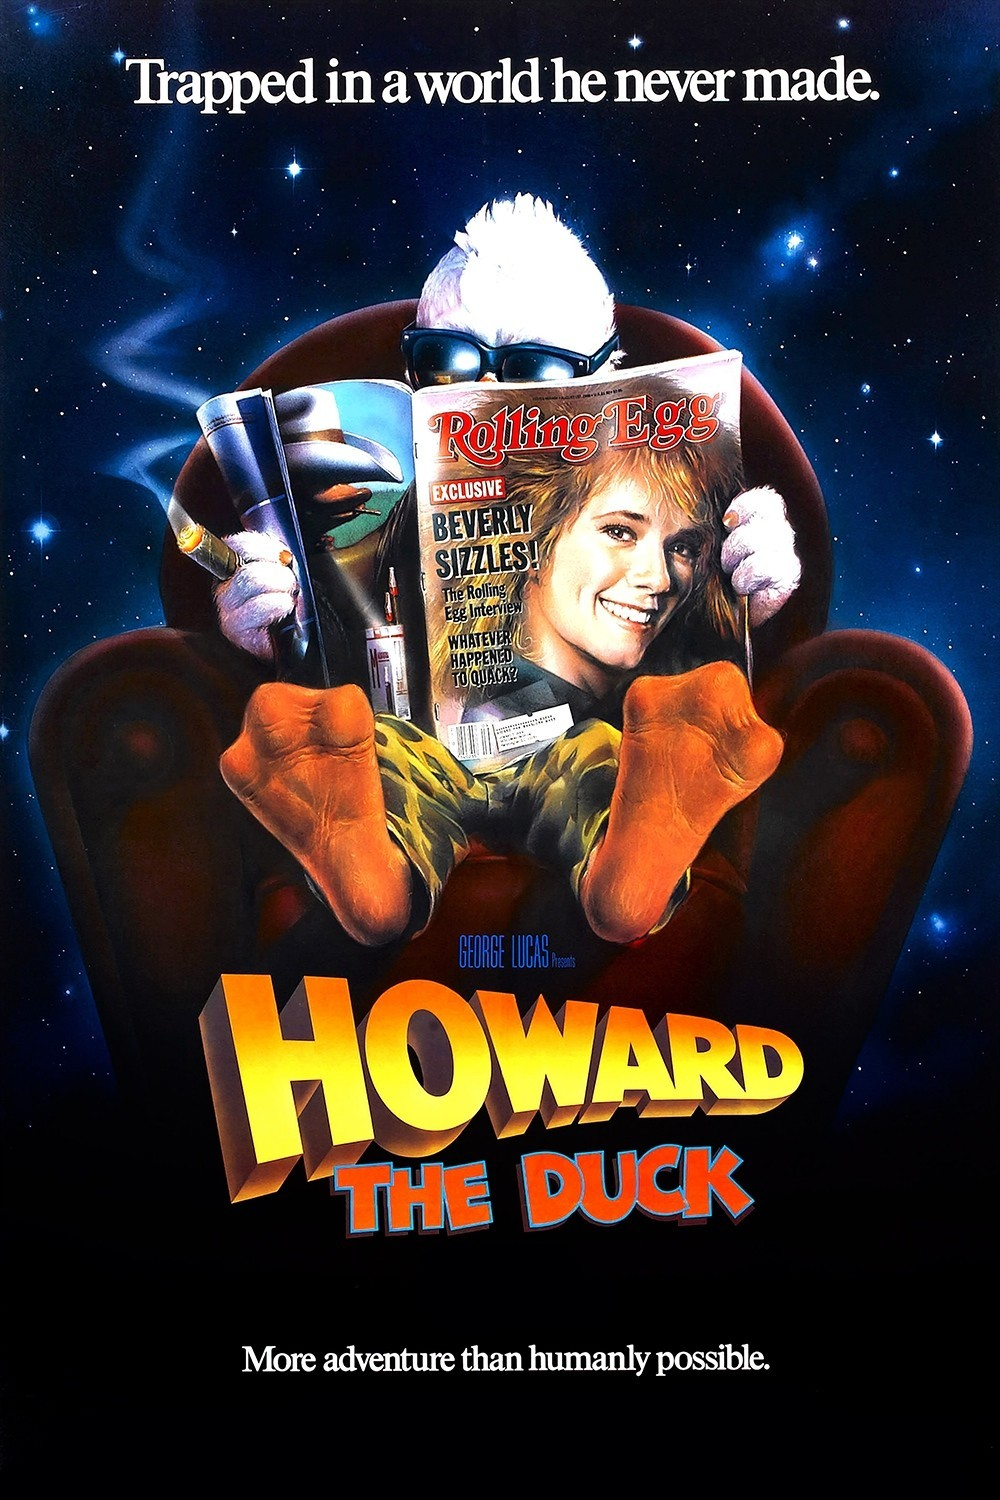 Howard The Duck Movie Poster The Movie